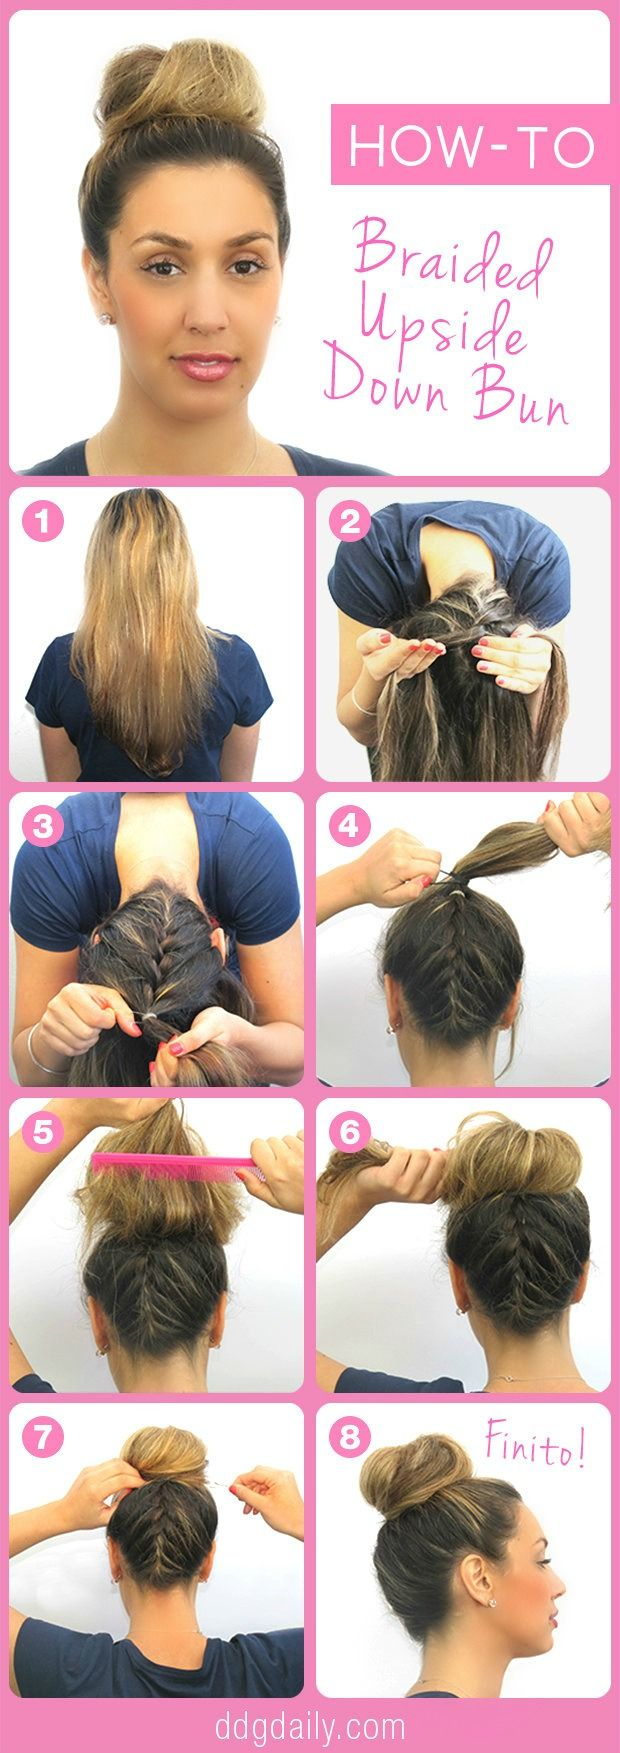 11 Pinterest Hair Tutorials You Need to Try